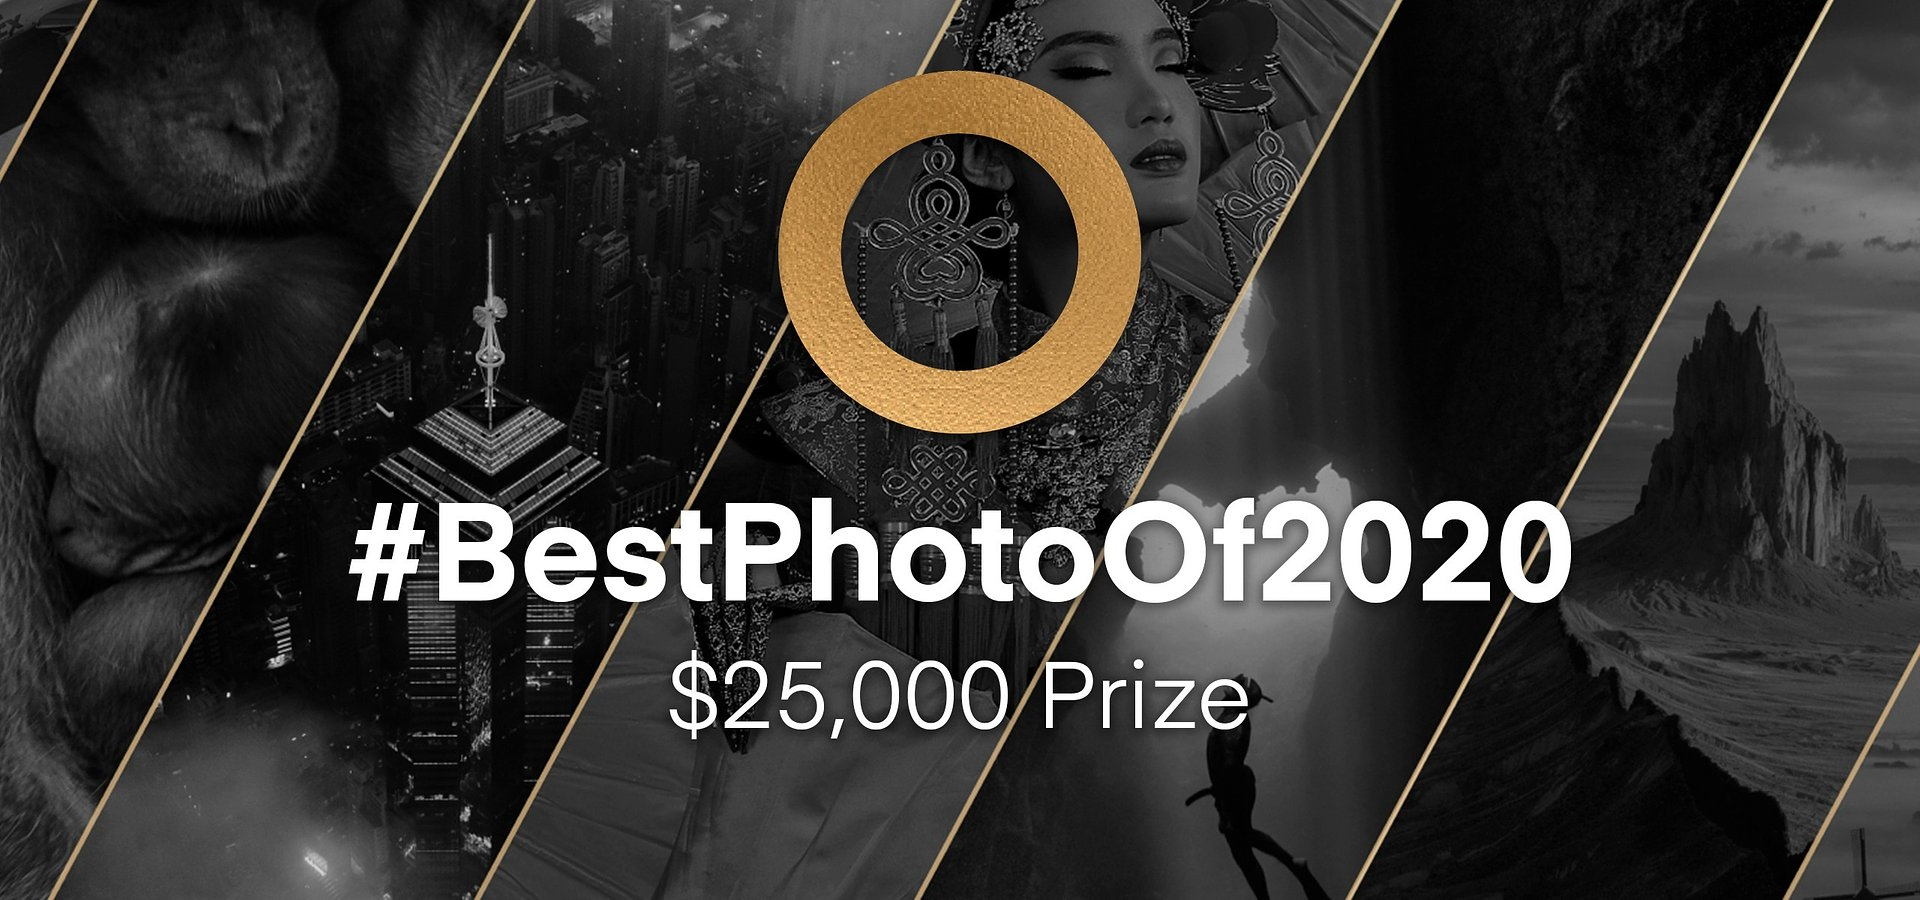 50 Finalist Photos Competing In Agora's #BestPhotoOf2020 Award To Win $25,000